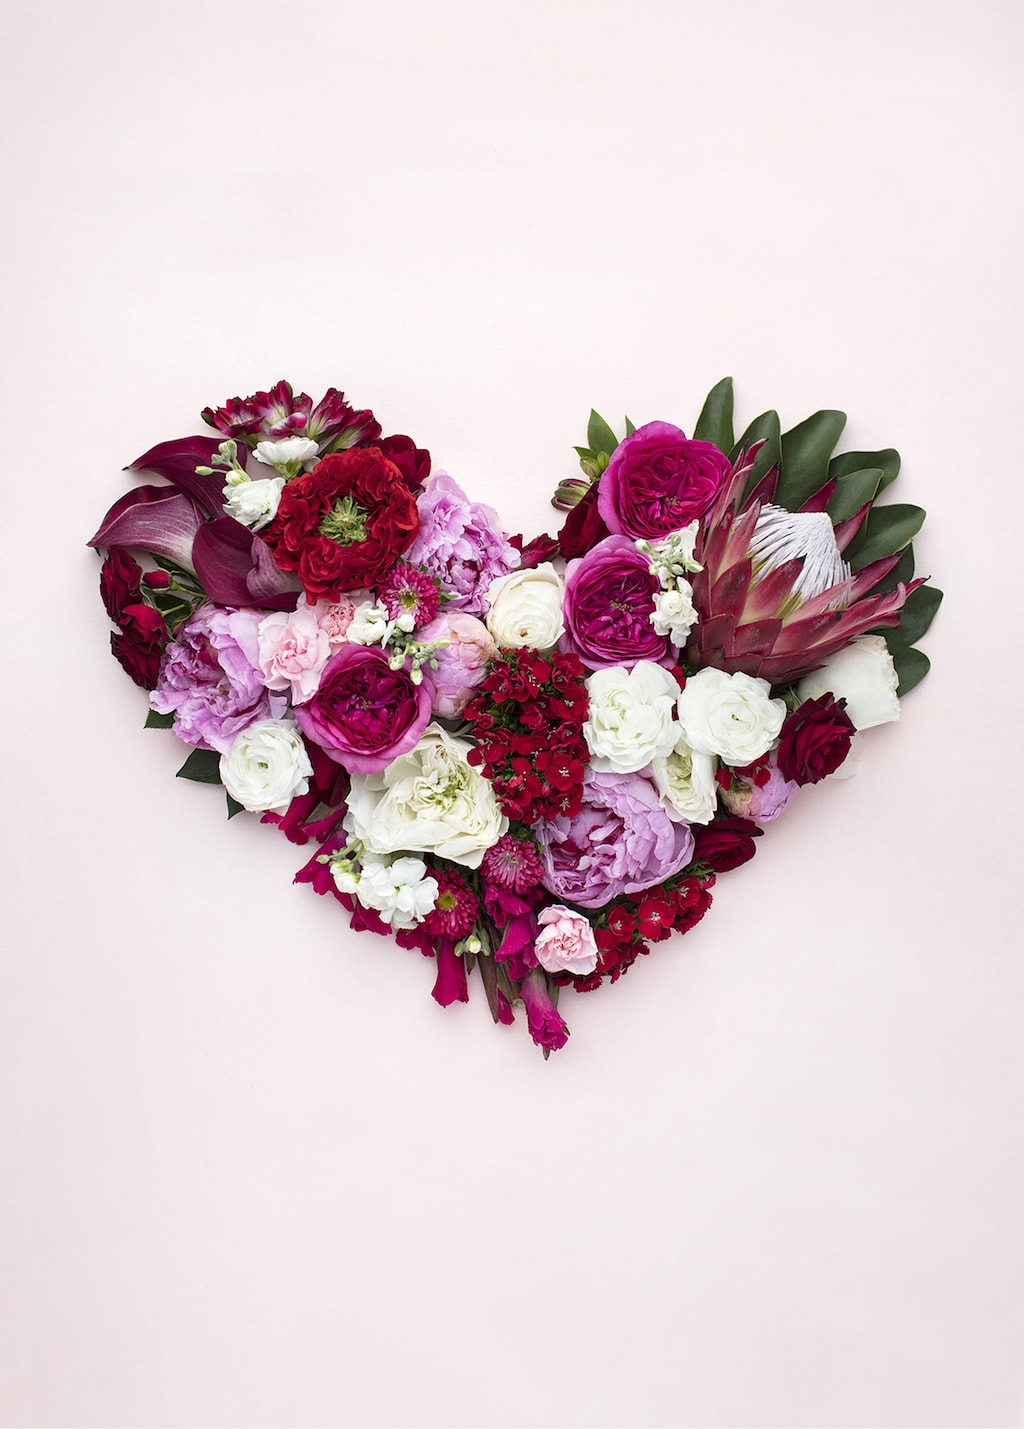 Heart Flowers -- Self-Love Ideas Valentine's Day